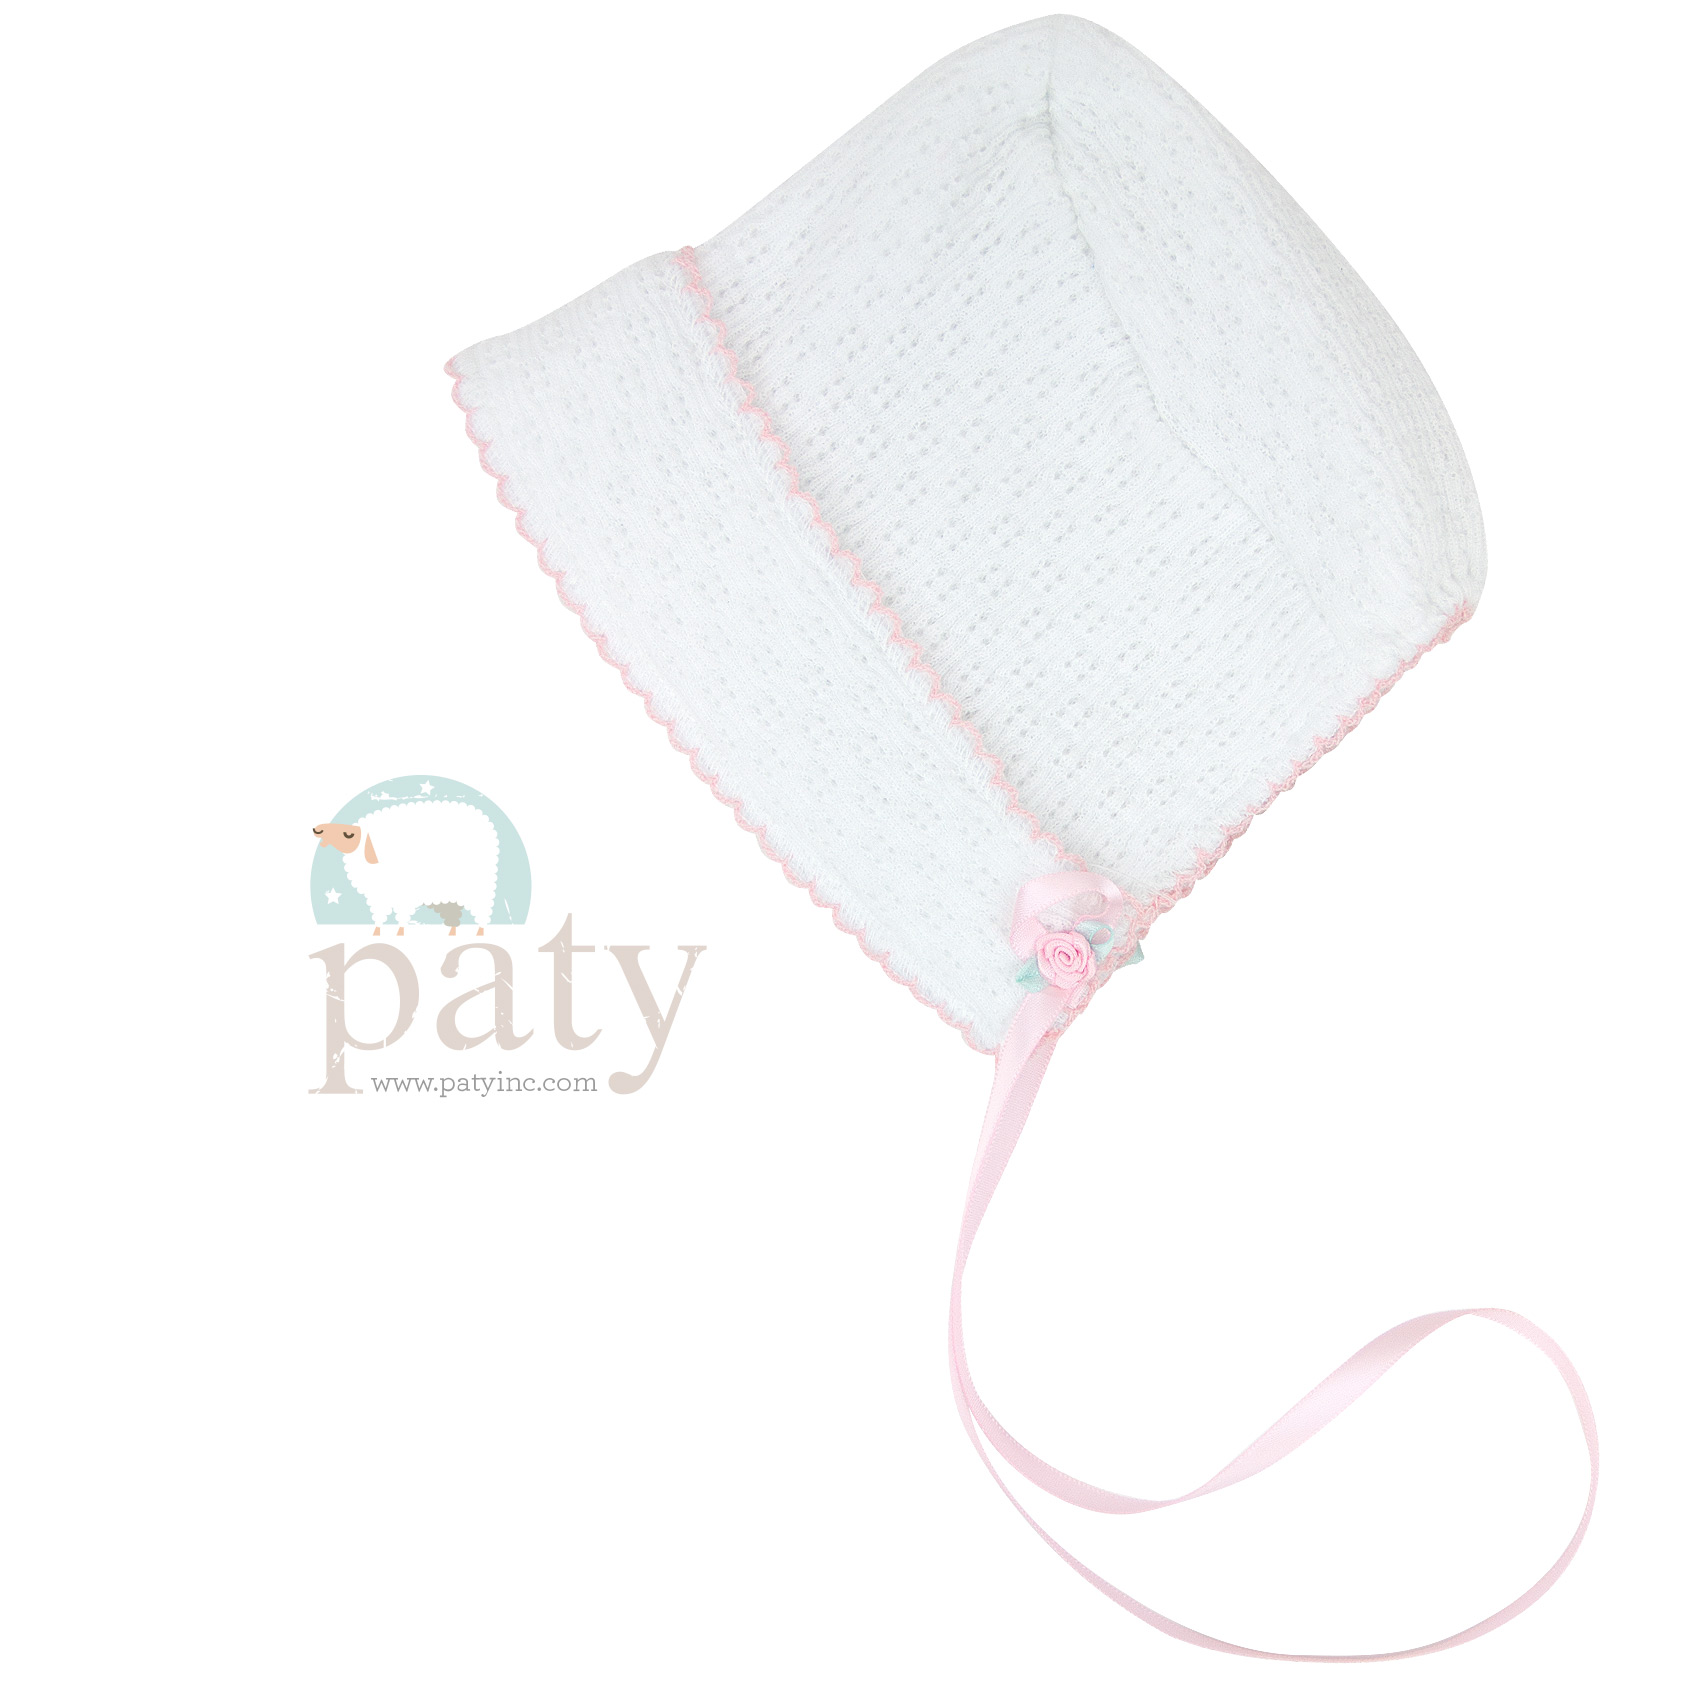 Paty Bonnet with Pink Rosette and Trim